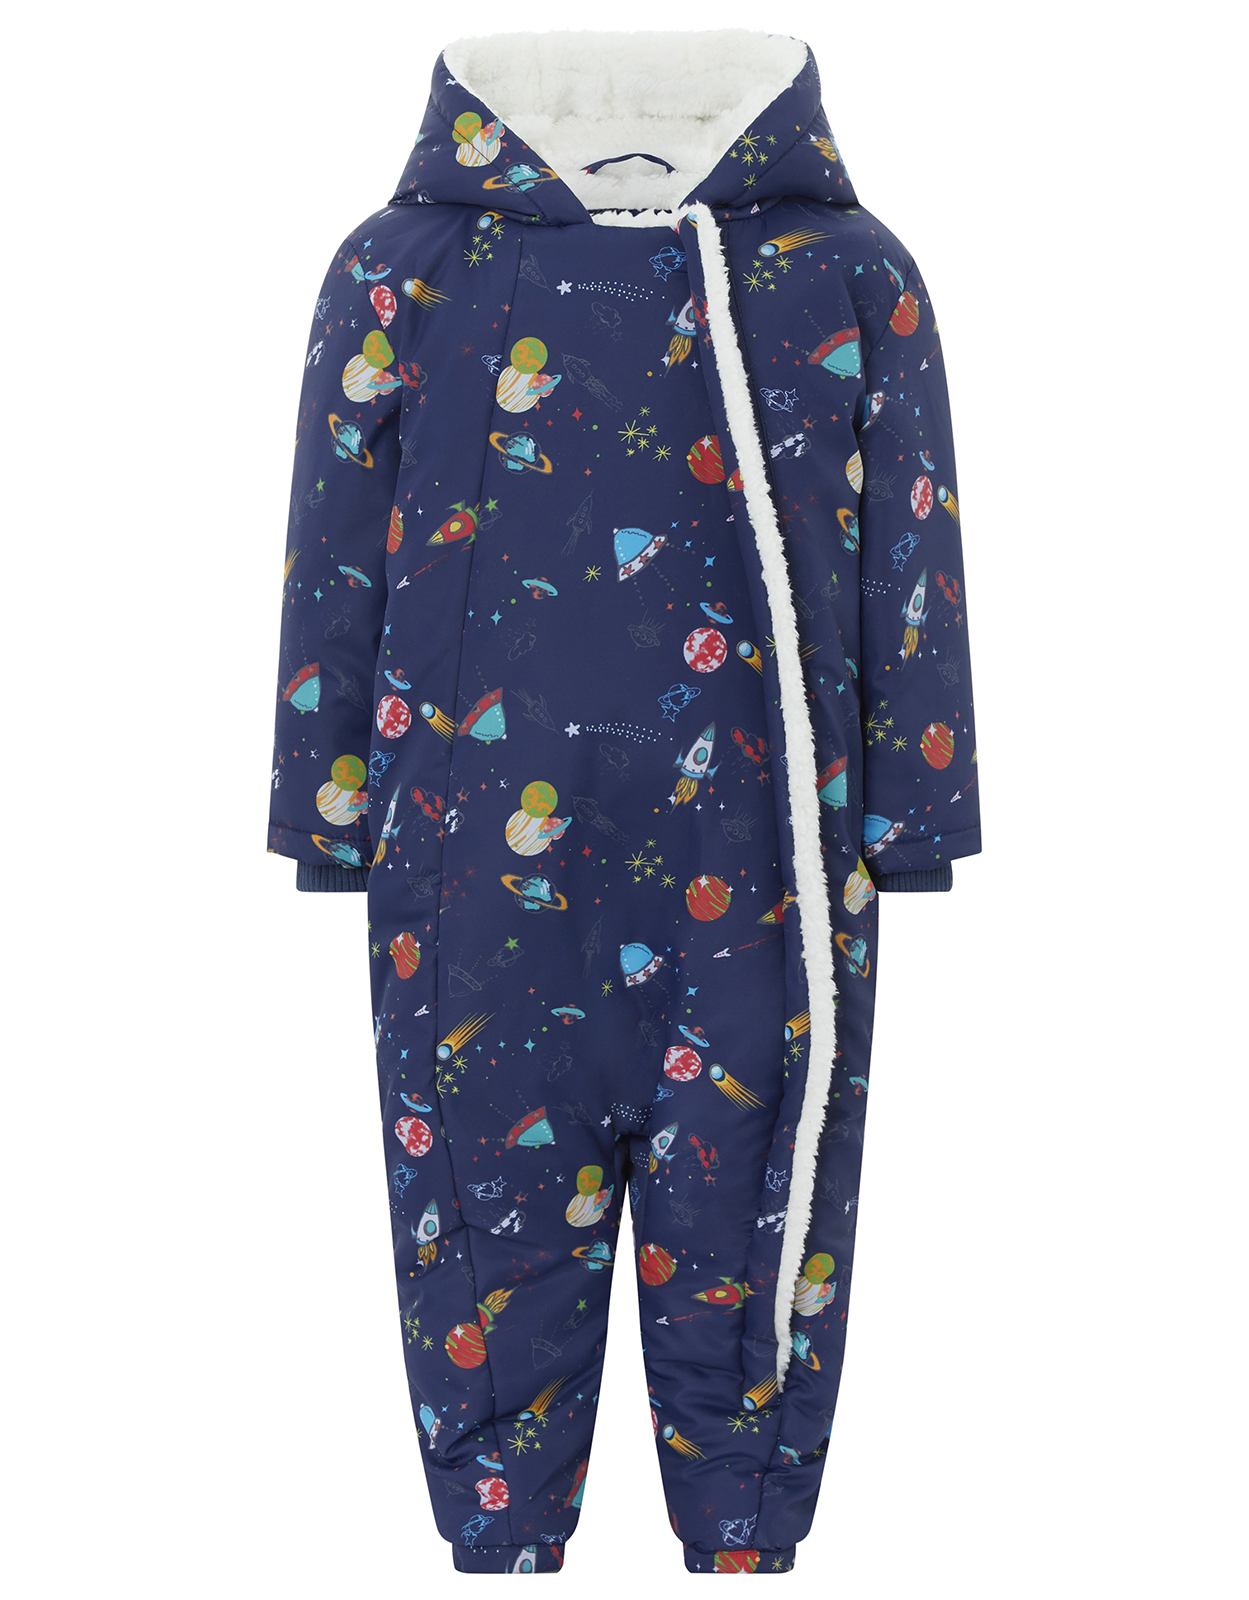 Monsoon Space Print Snowsuit